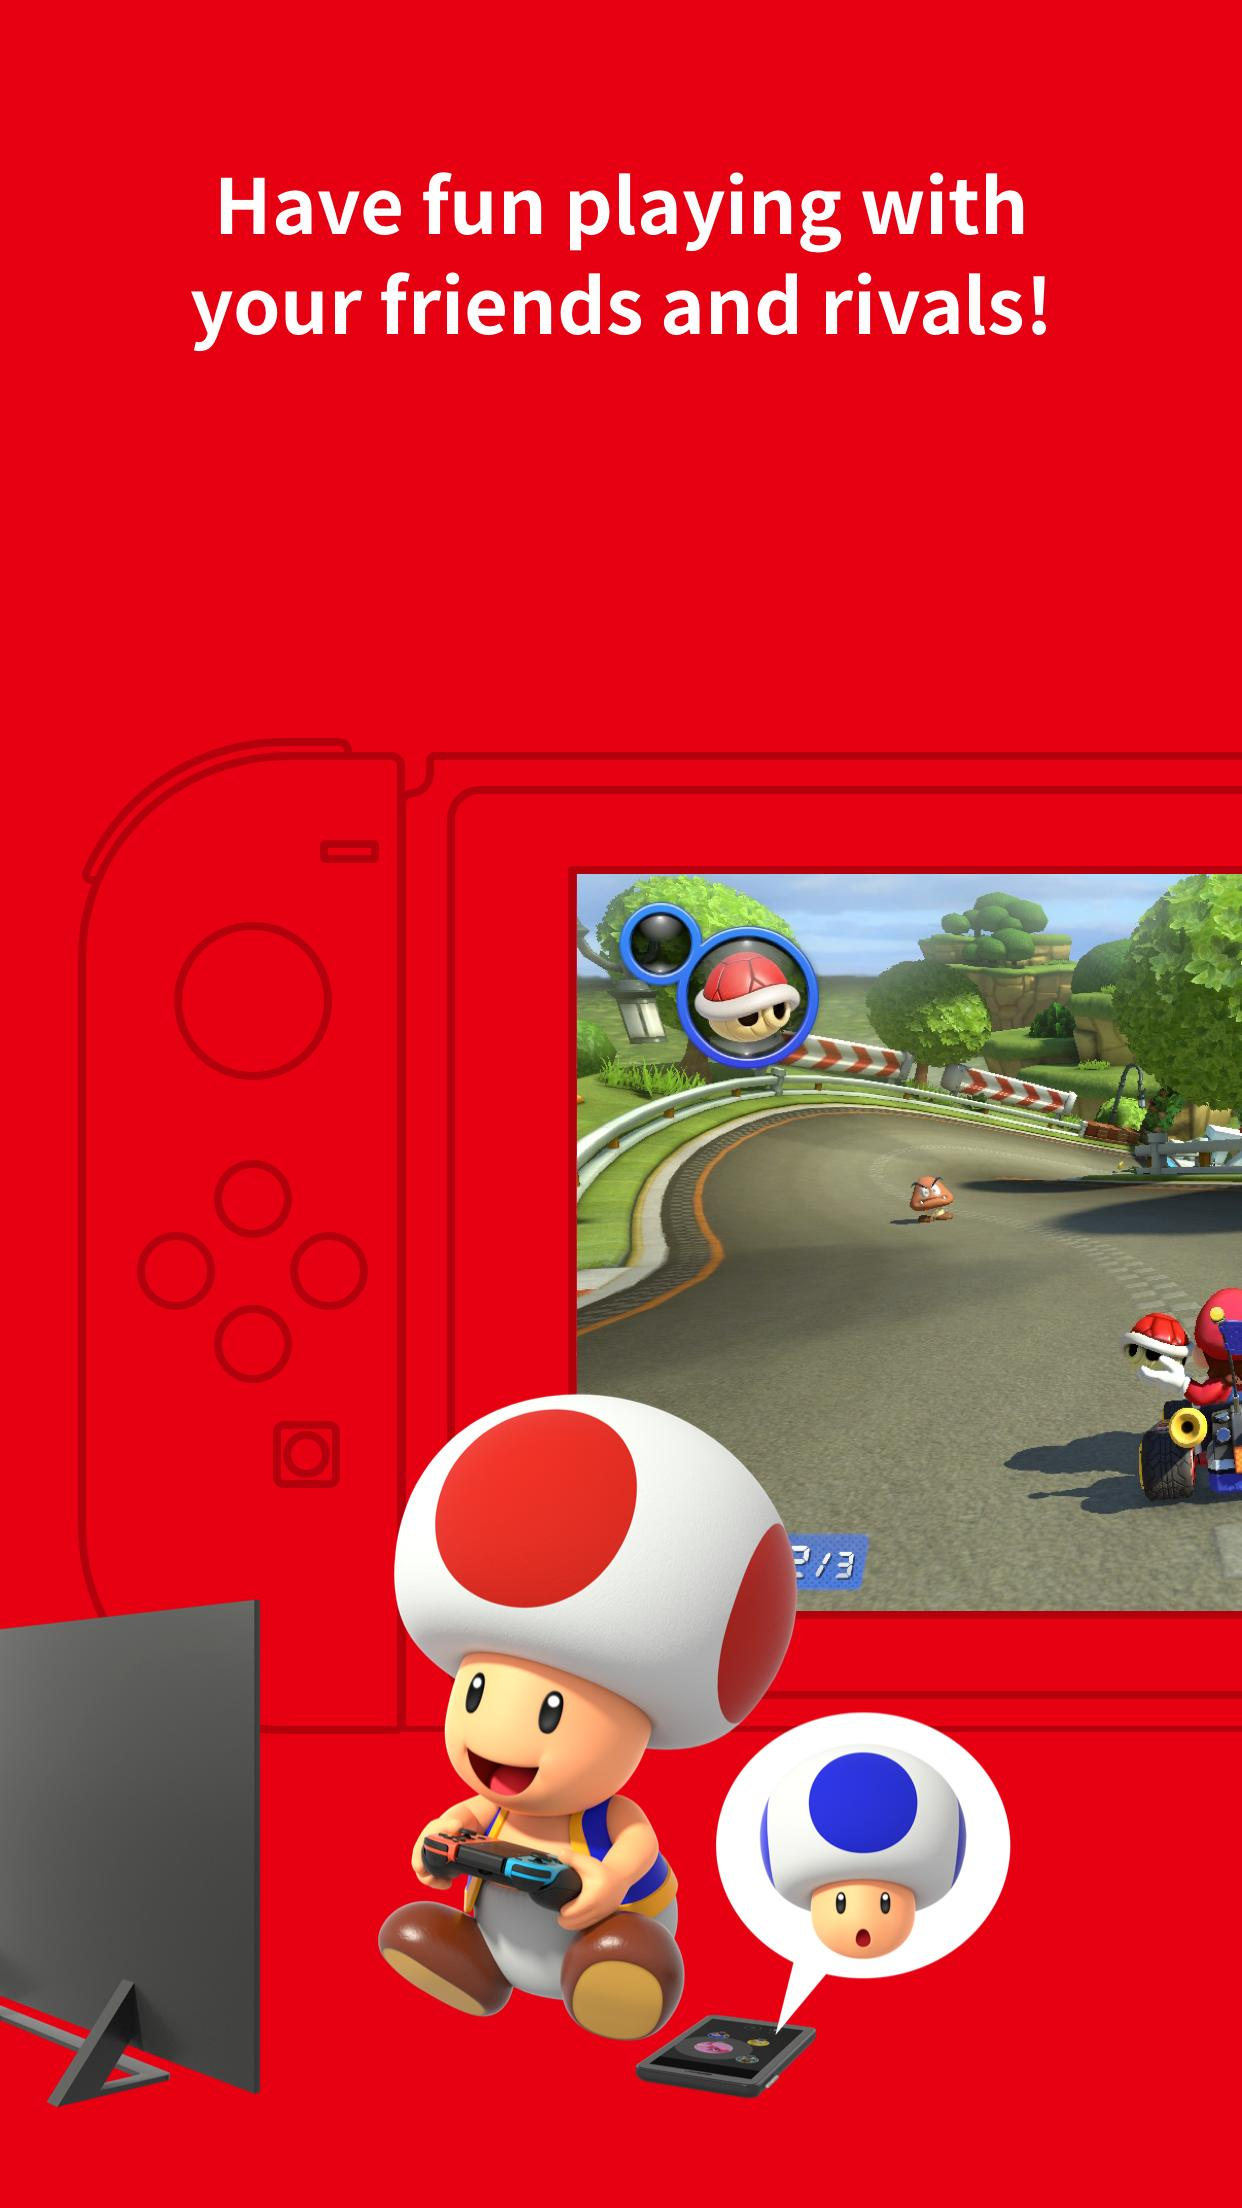 Mario kart download uptodown | Mario XP 1 2 1  2019-03-27